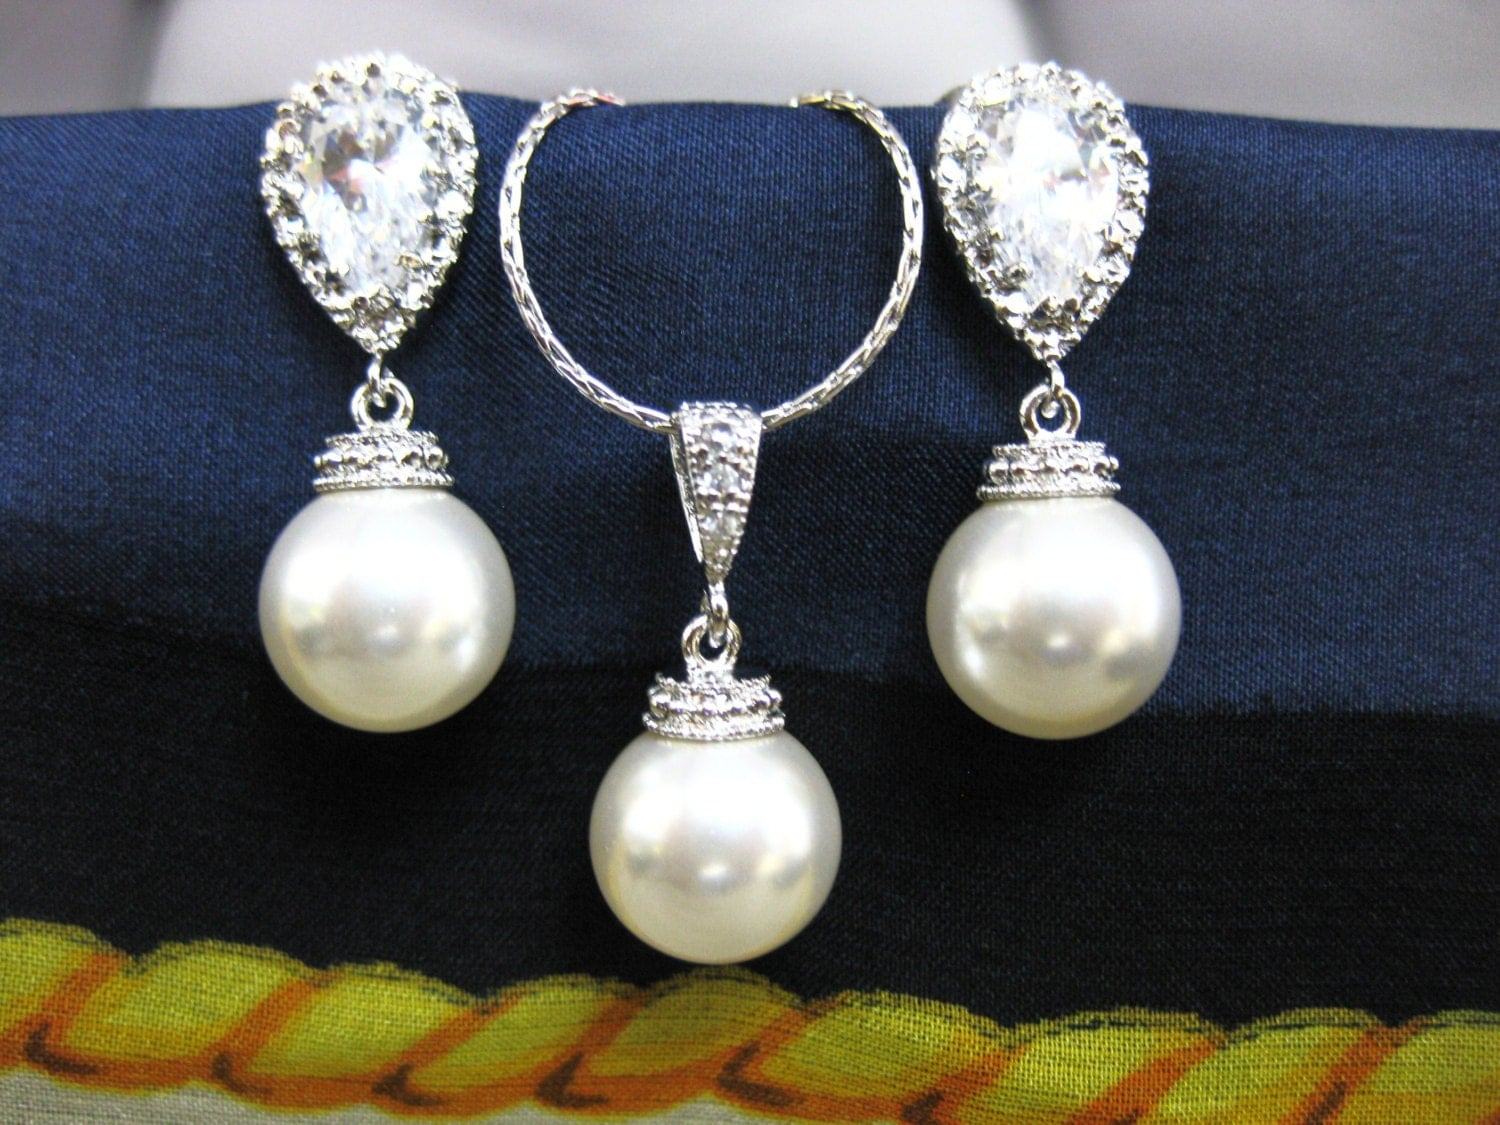 Wedding Gift Jewelry: Bridal Pearl Earrings & Necklace Gift Set Wedding Jewelry